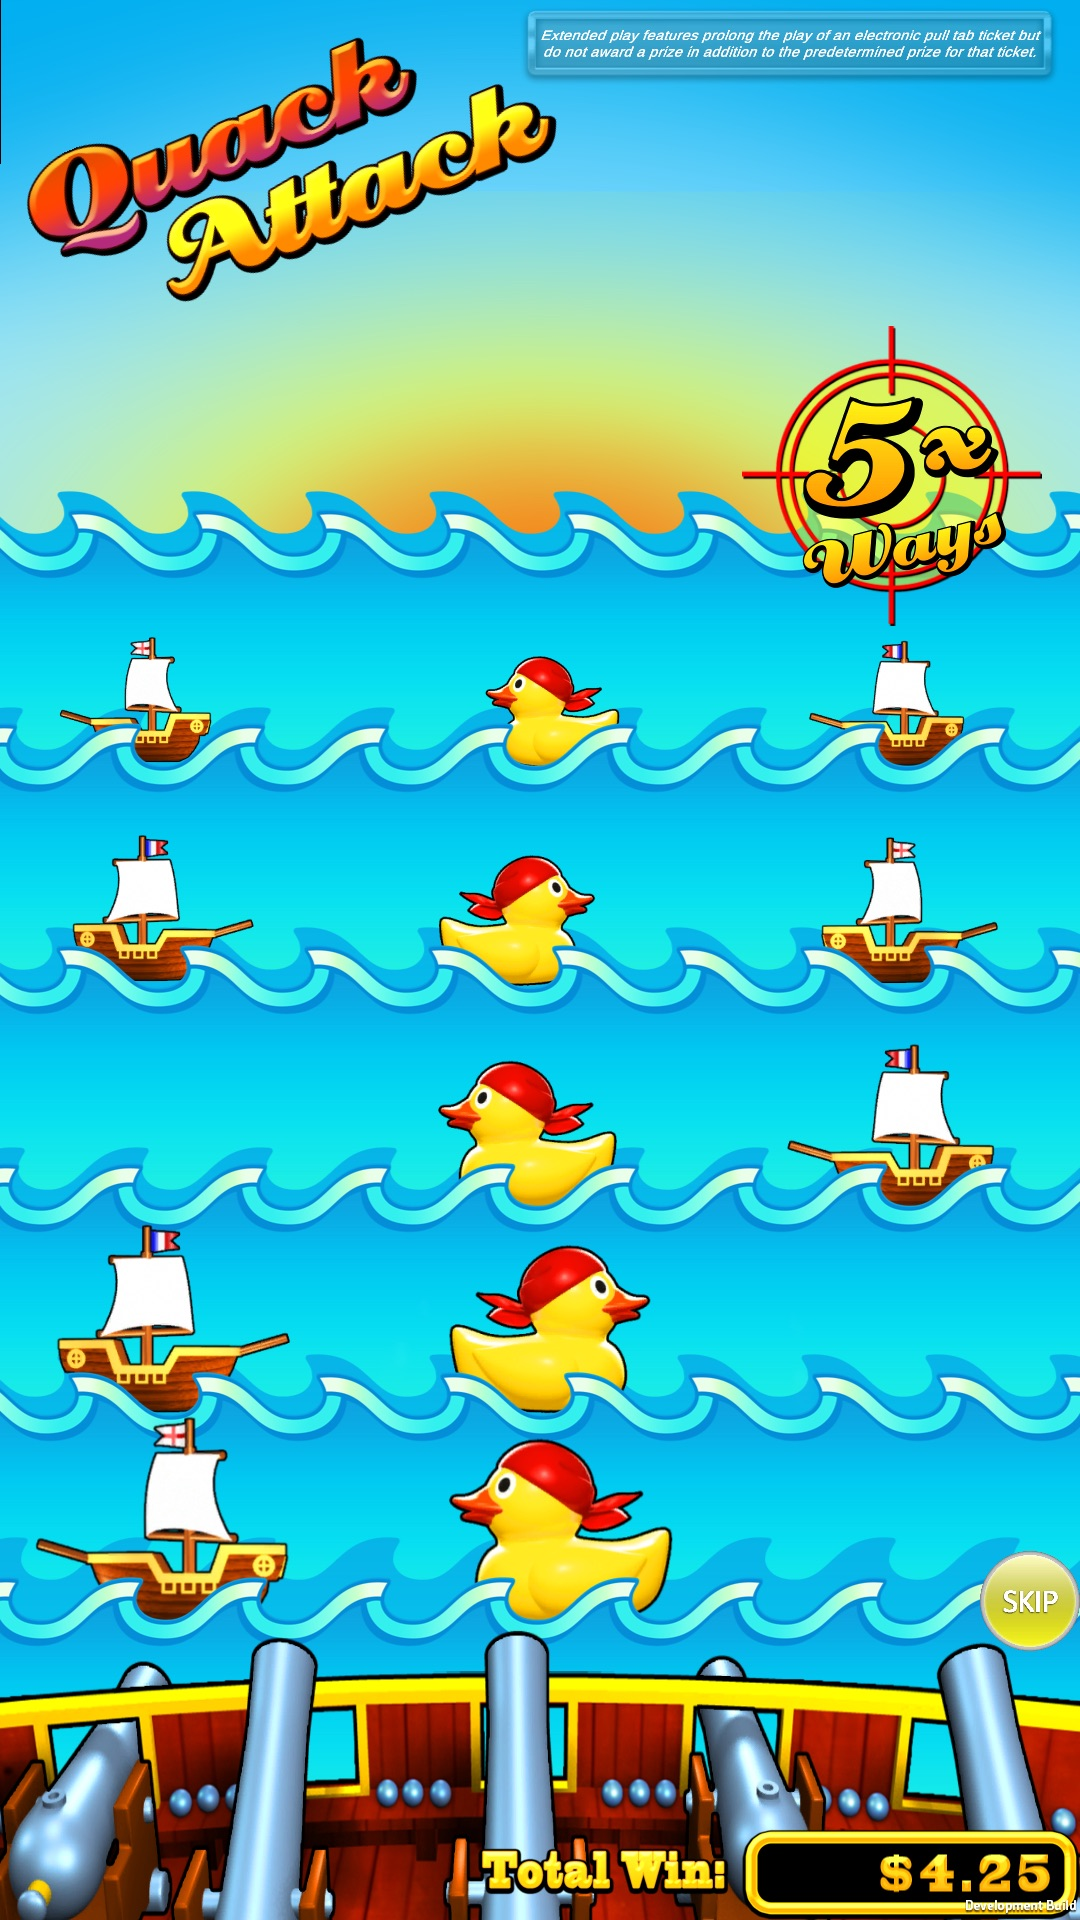 Quack-attack-vertical-pull-tab-screen-shot-bonus